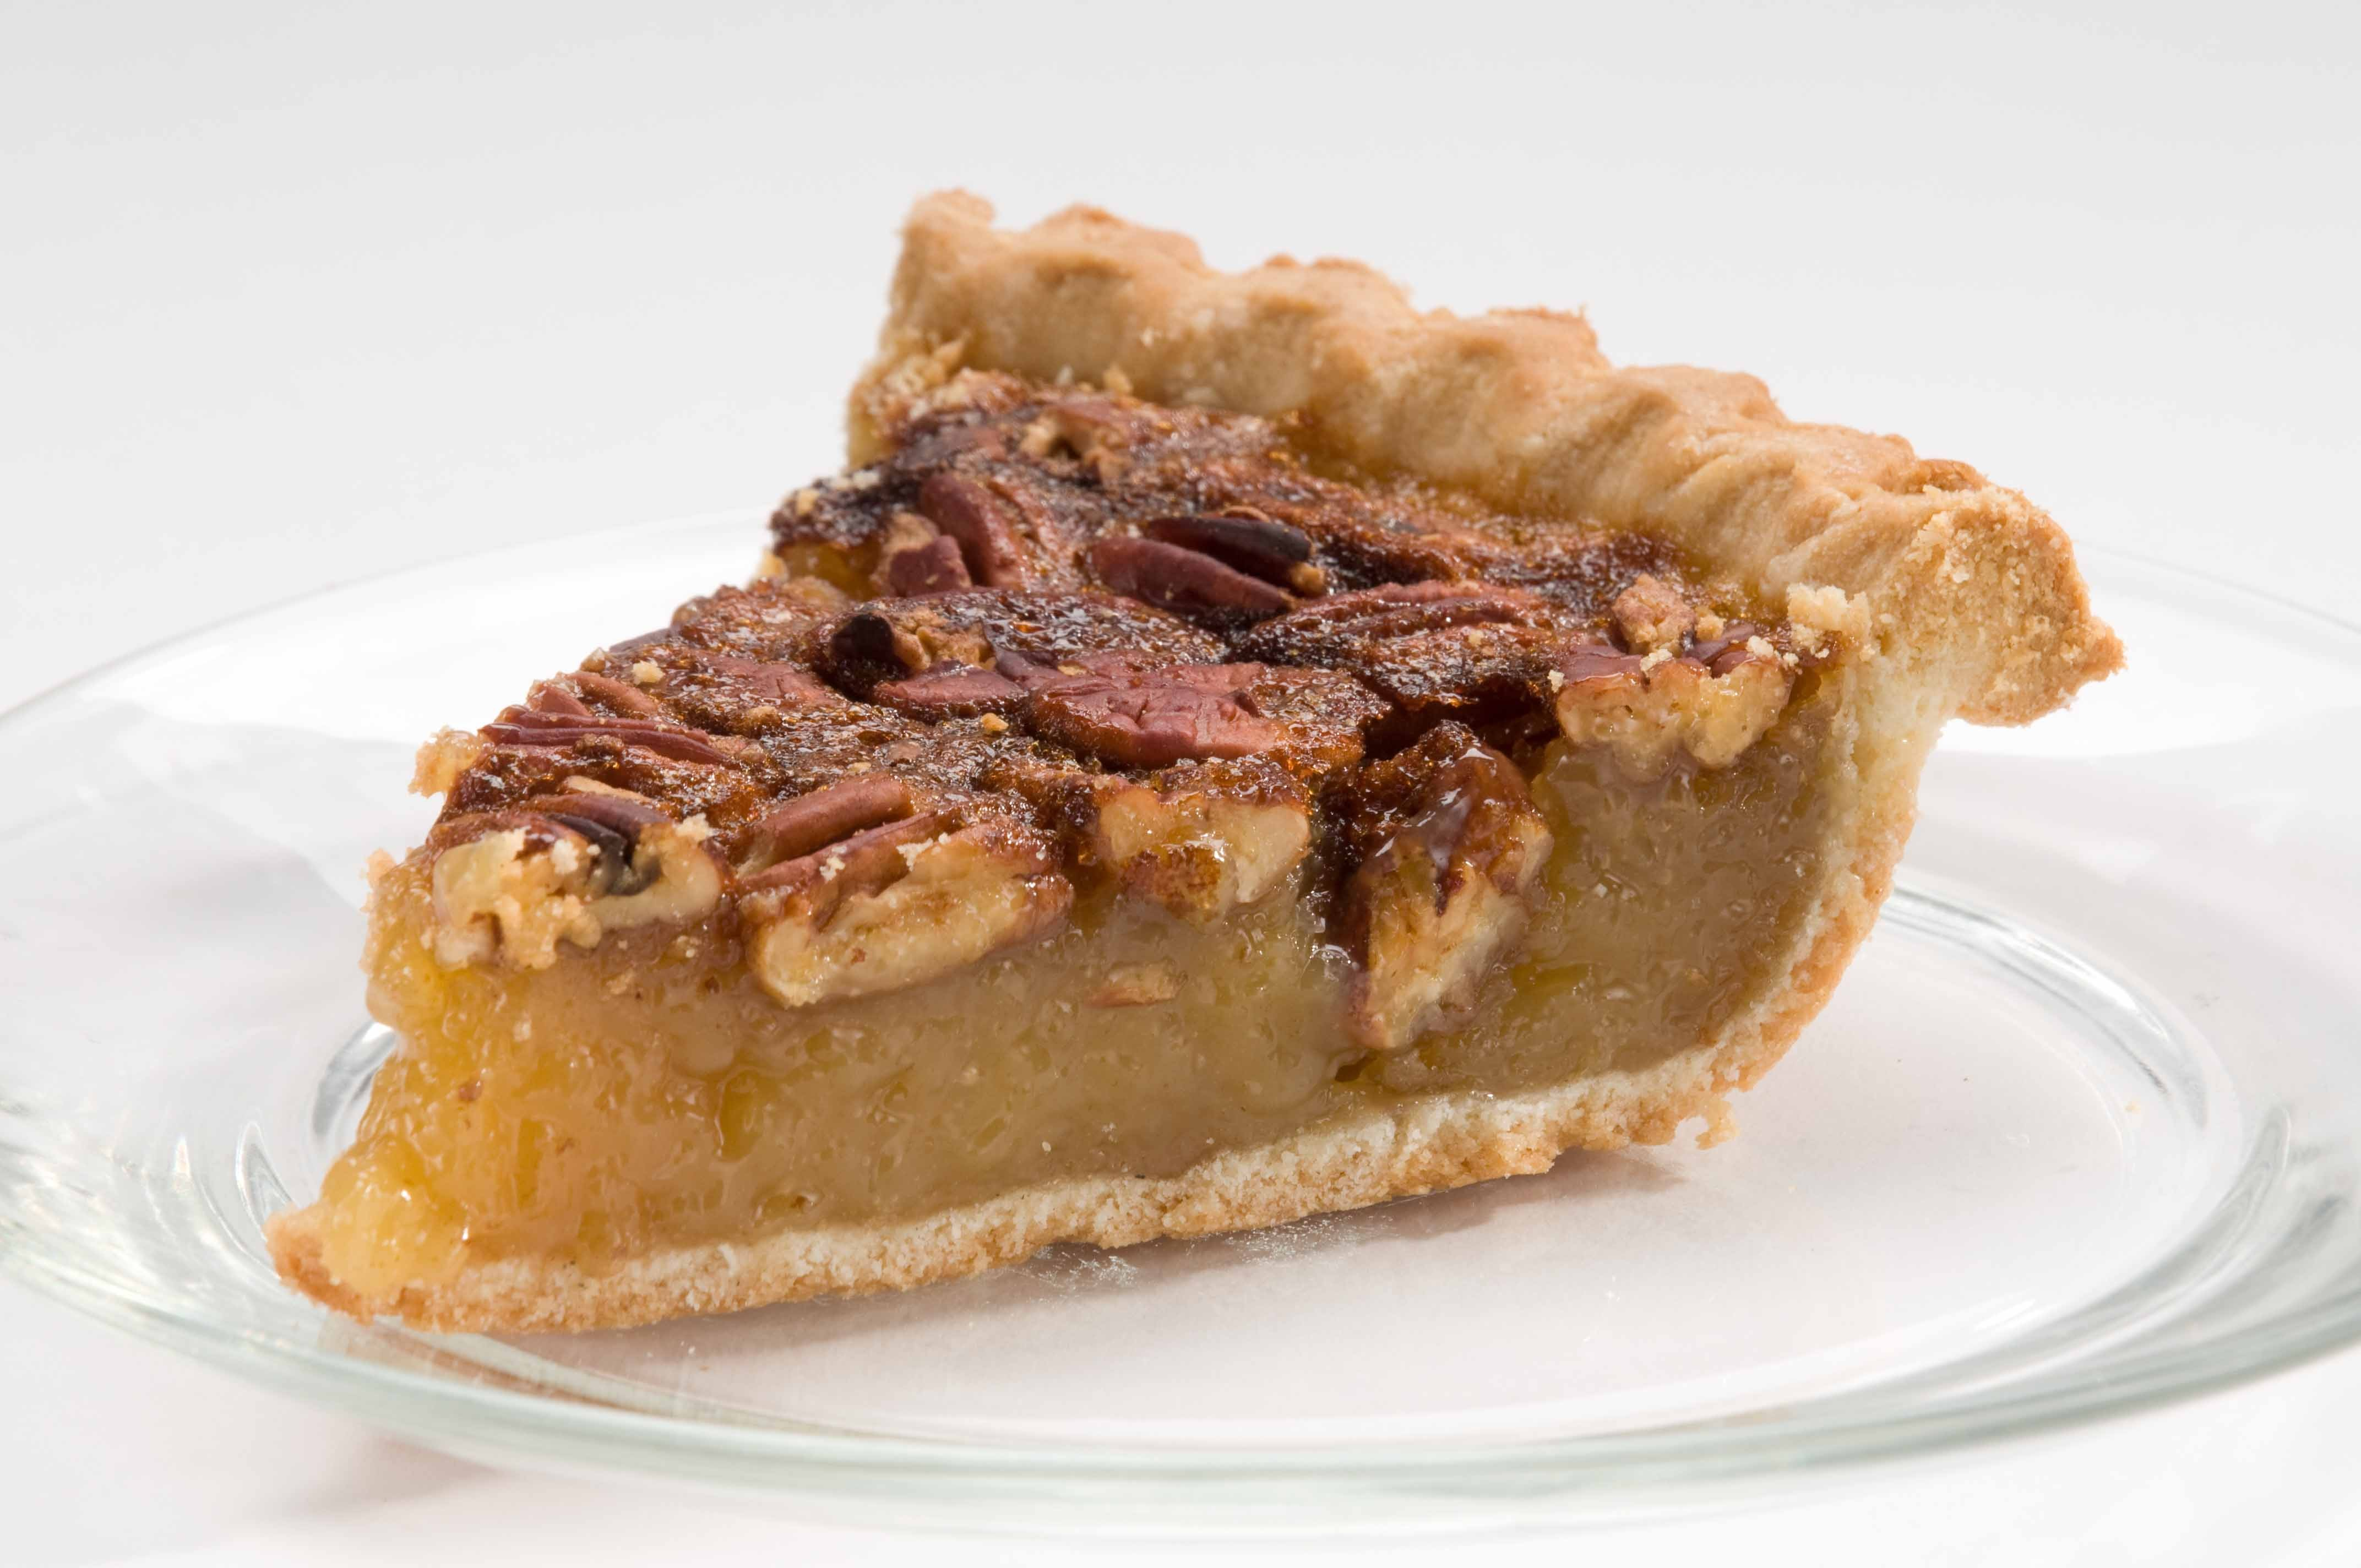 Recipes By Course Desserts Pies Pecan Pie Luby's Pecan Pie